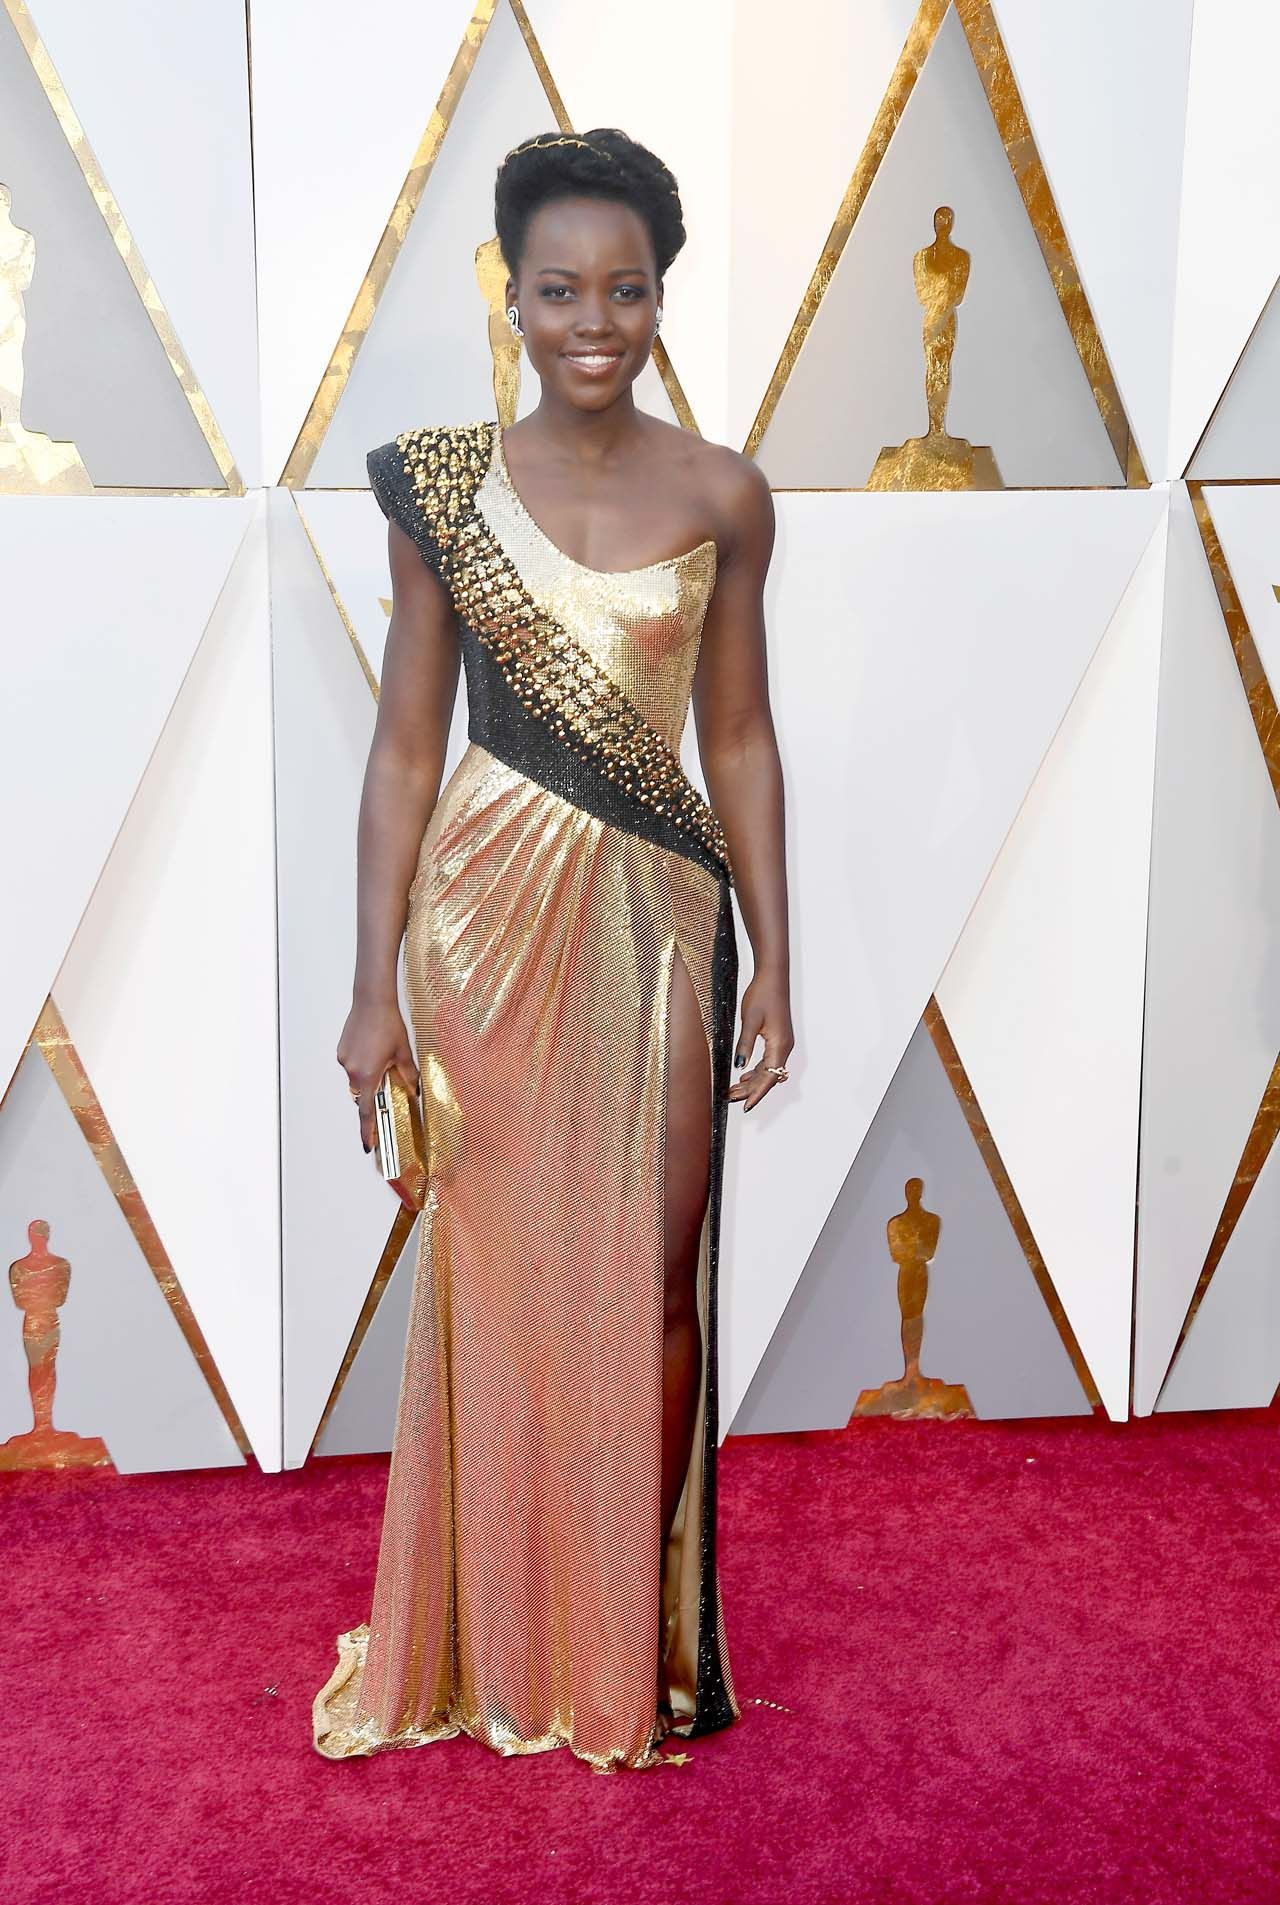 Lupita Nyong'o wearing Atelier Versace at the 90th Annual Academy Awards.